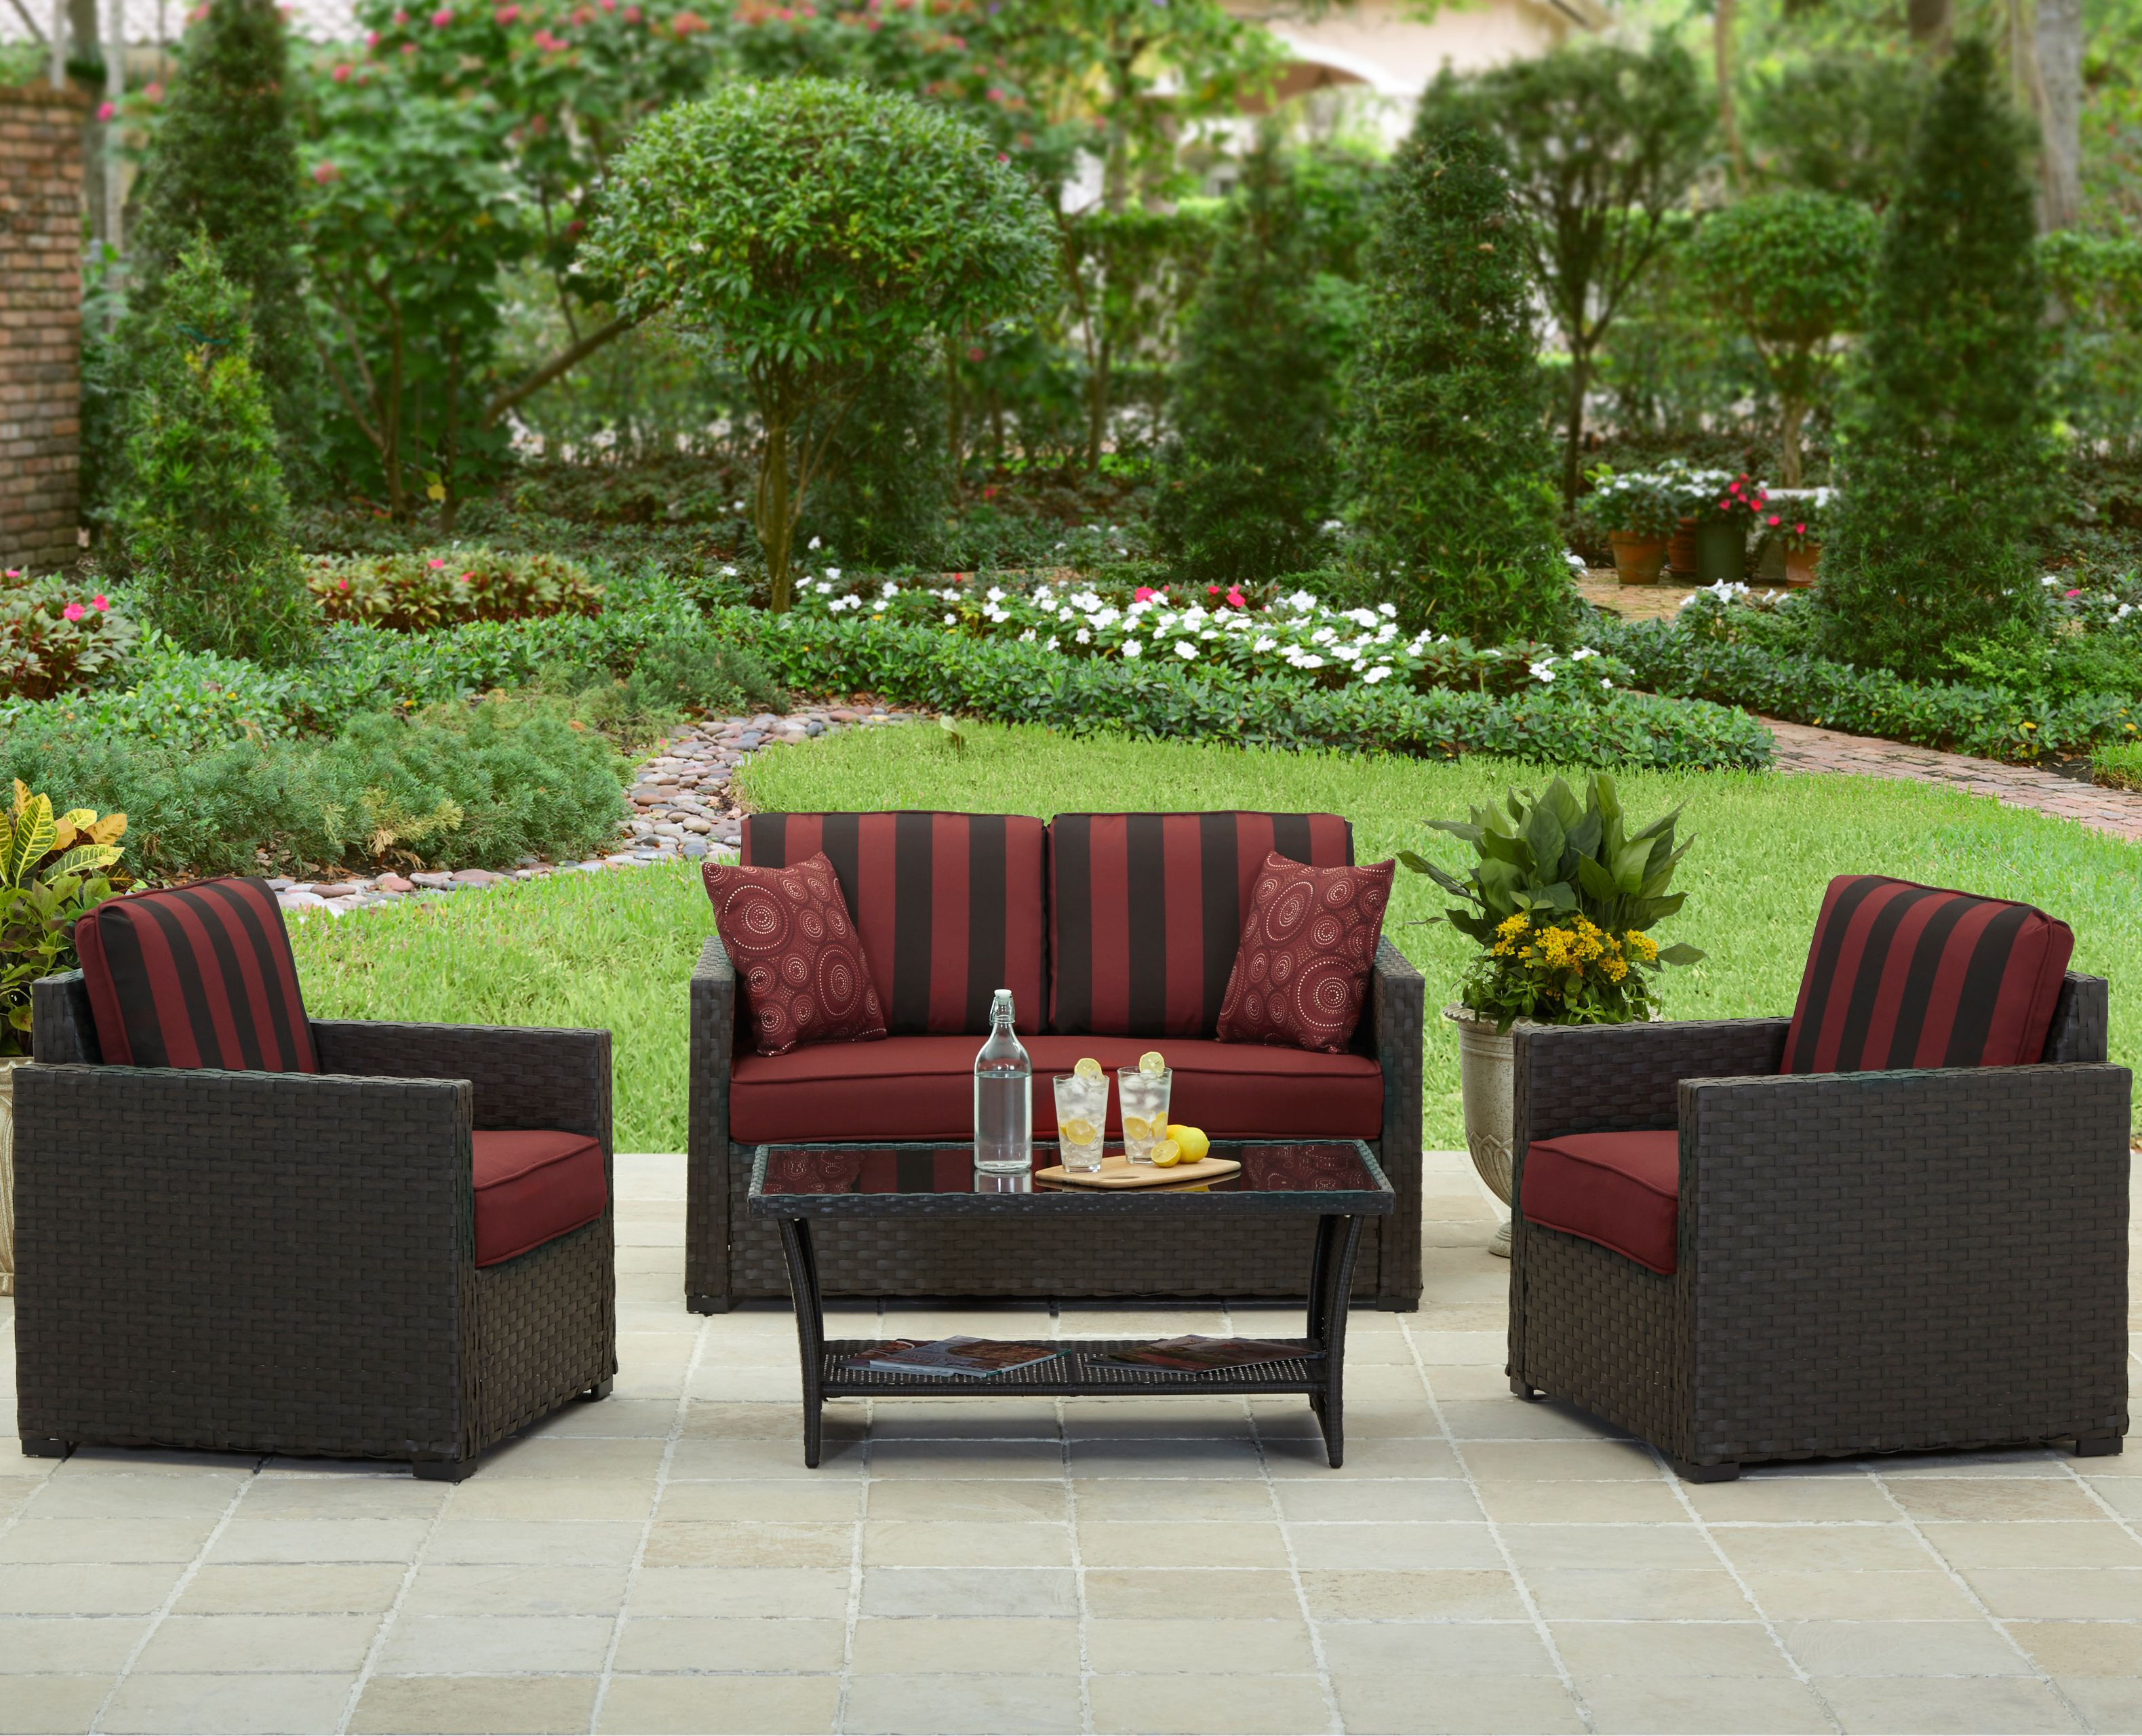 bb5f50a1837503c9bec82161e712eb8b - Better Homes And Gardens 21 Pc